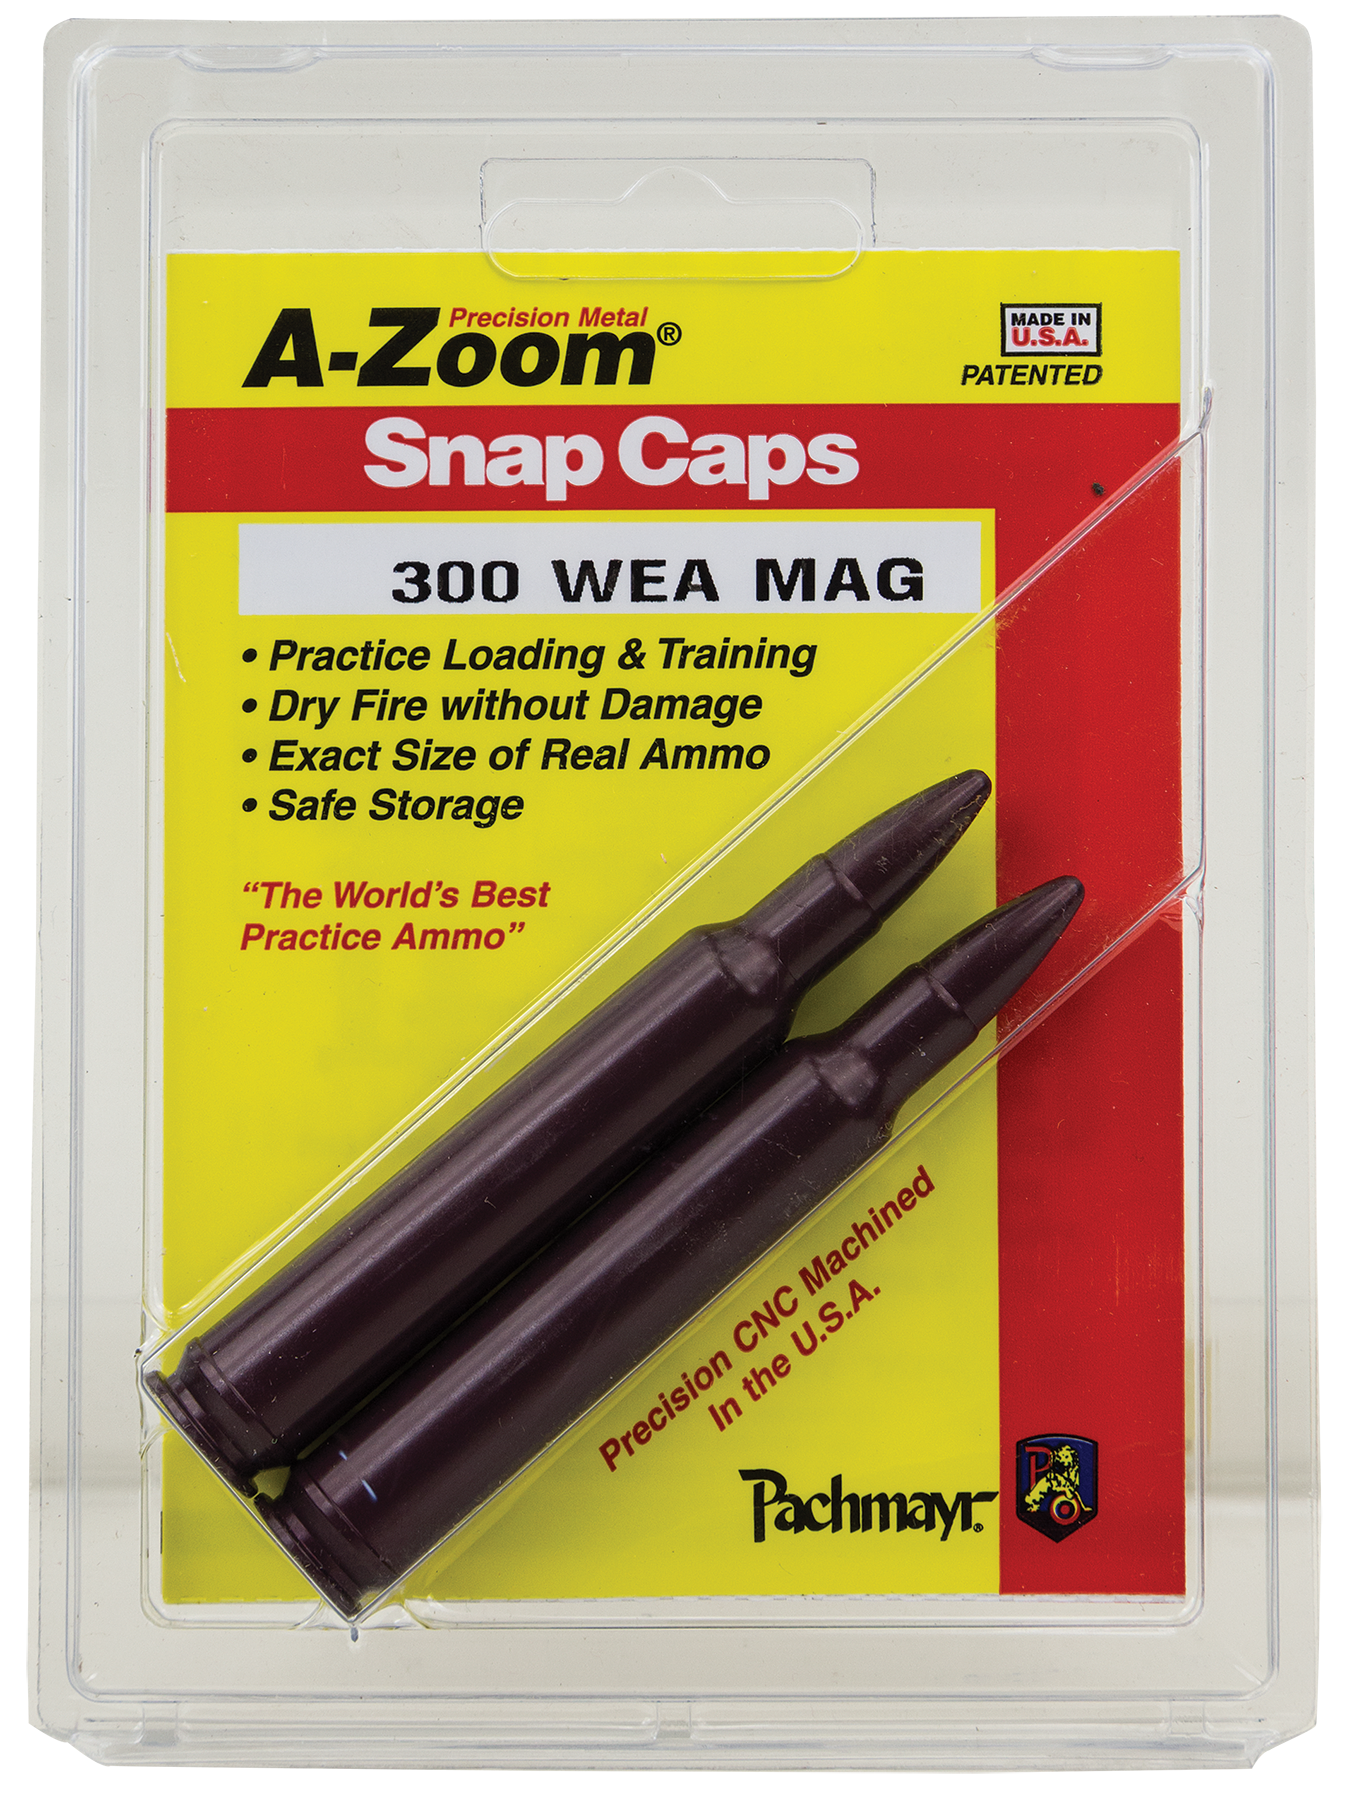 A-Zoom 12284 Snap Caps Rifle 300 Weatherby Magnum Aluminum 2